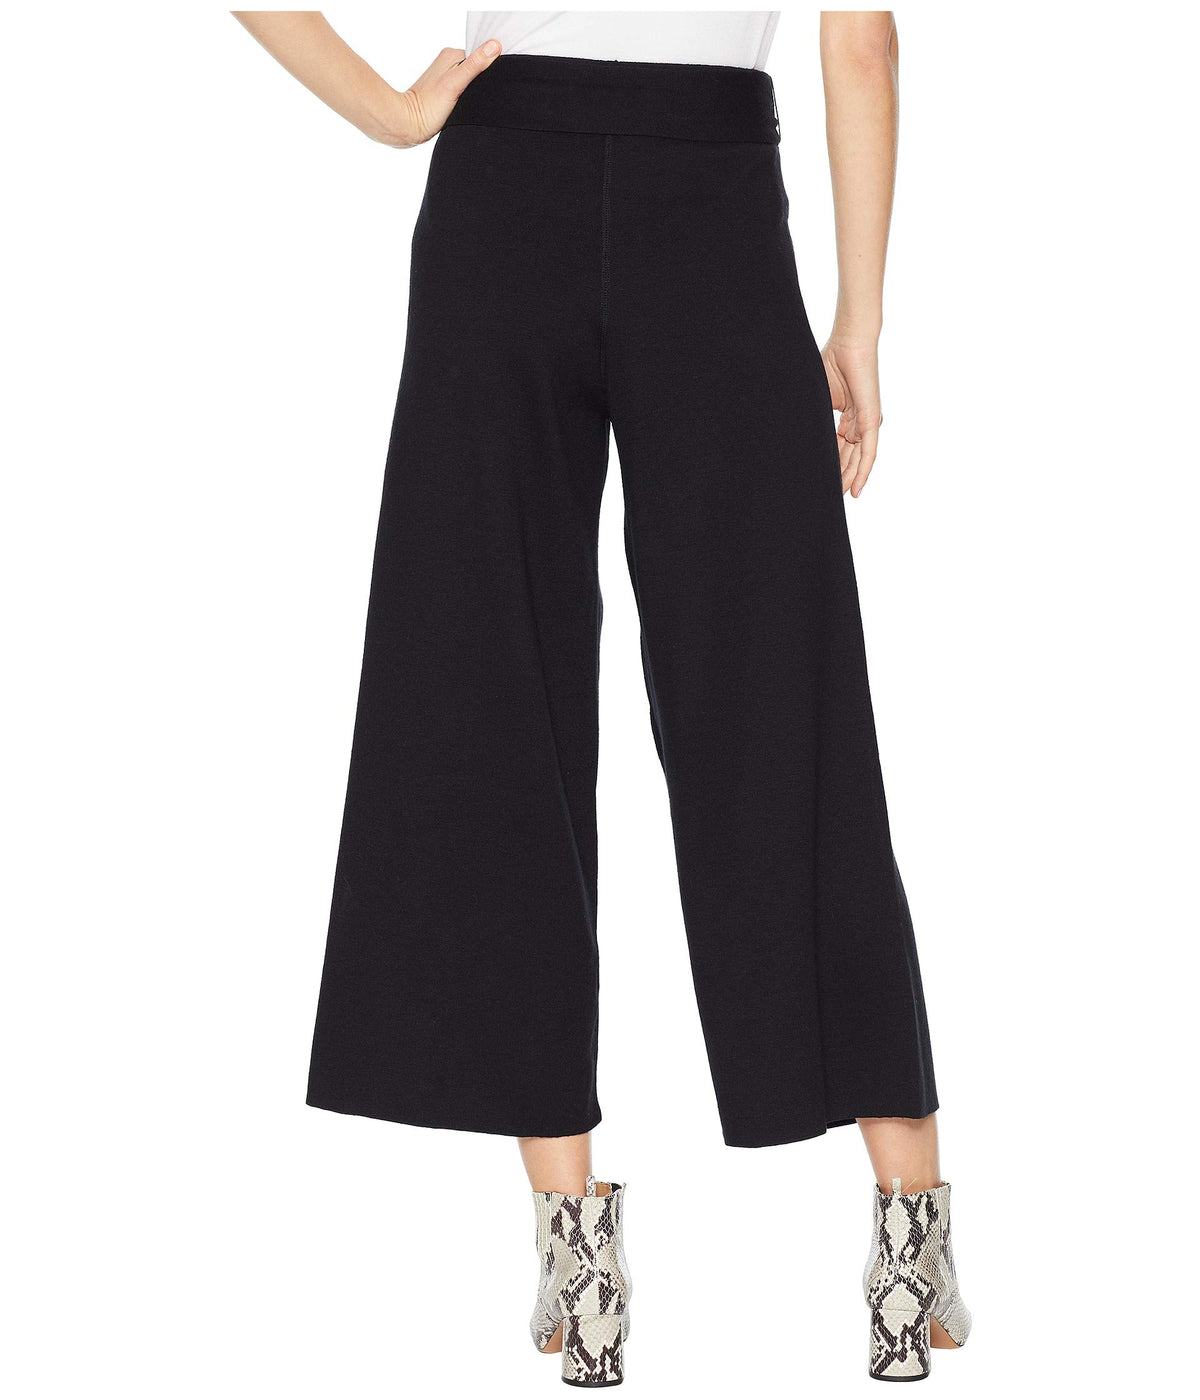 Luxe Cotton Blend Culottes with Tie